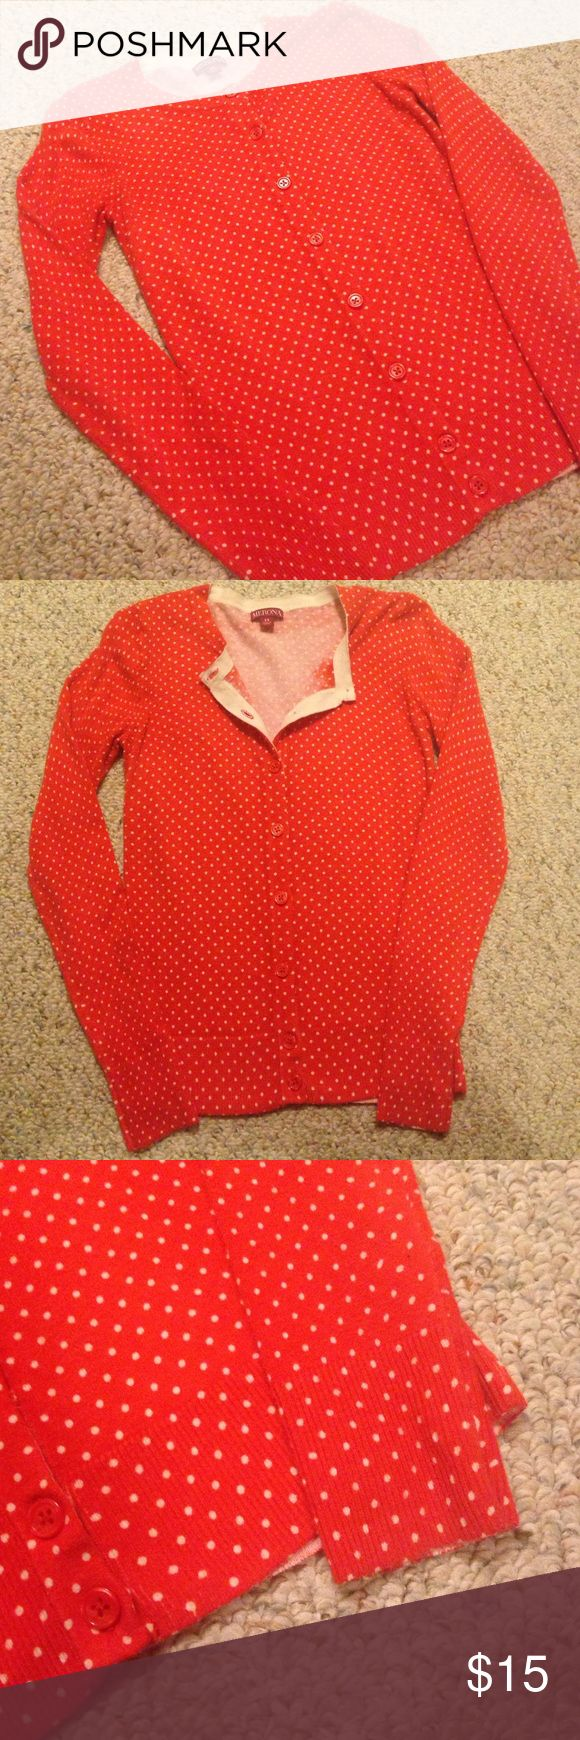 Orange Polka Dot Cardigan Cute cardigan. Looks great over chambray shirts or a simple white camisole. Also pairs well with vests. Gently used. Merona Sweaters Cardigans